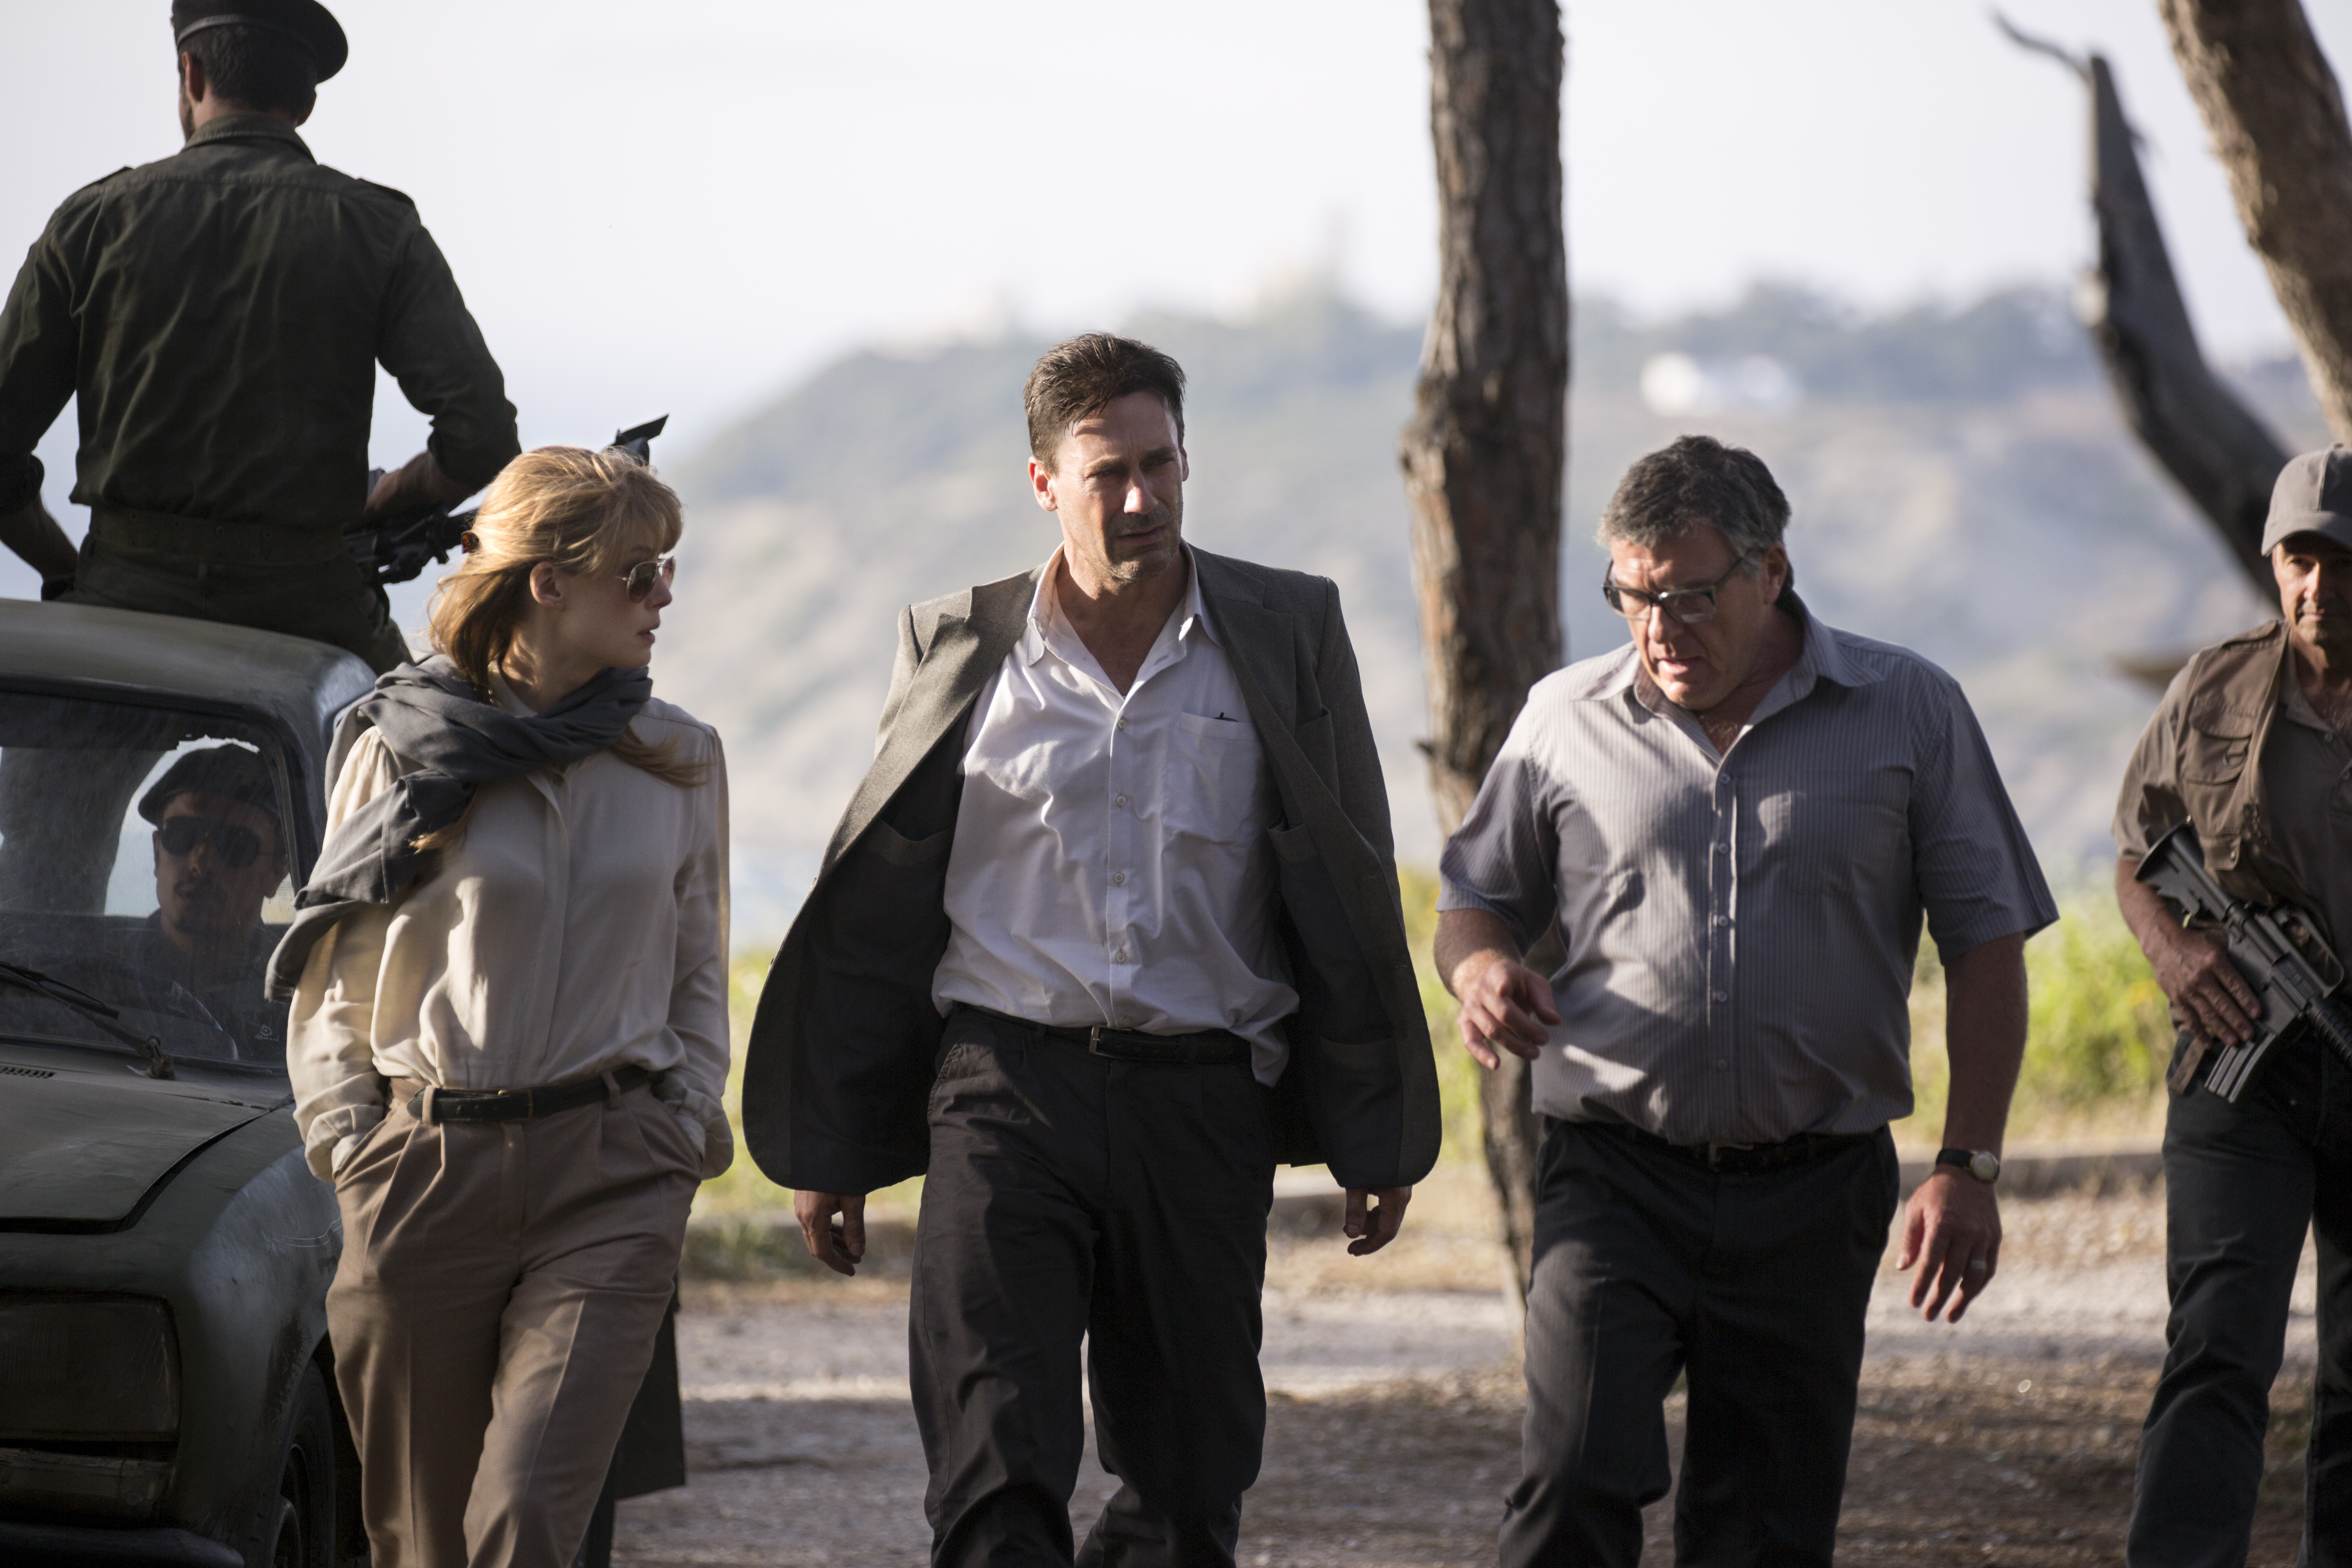 Travers on Beirut Jon Hamm Adds Movie Star Charisma to Spy